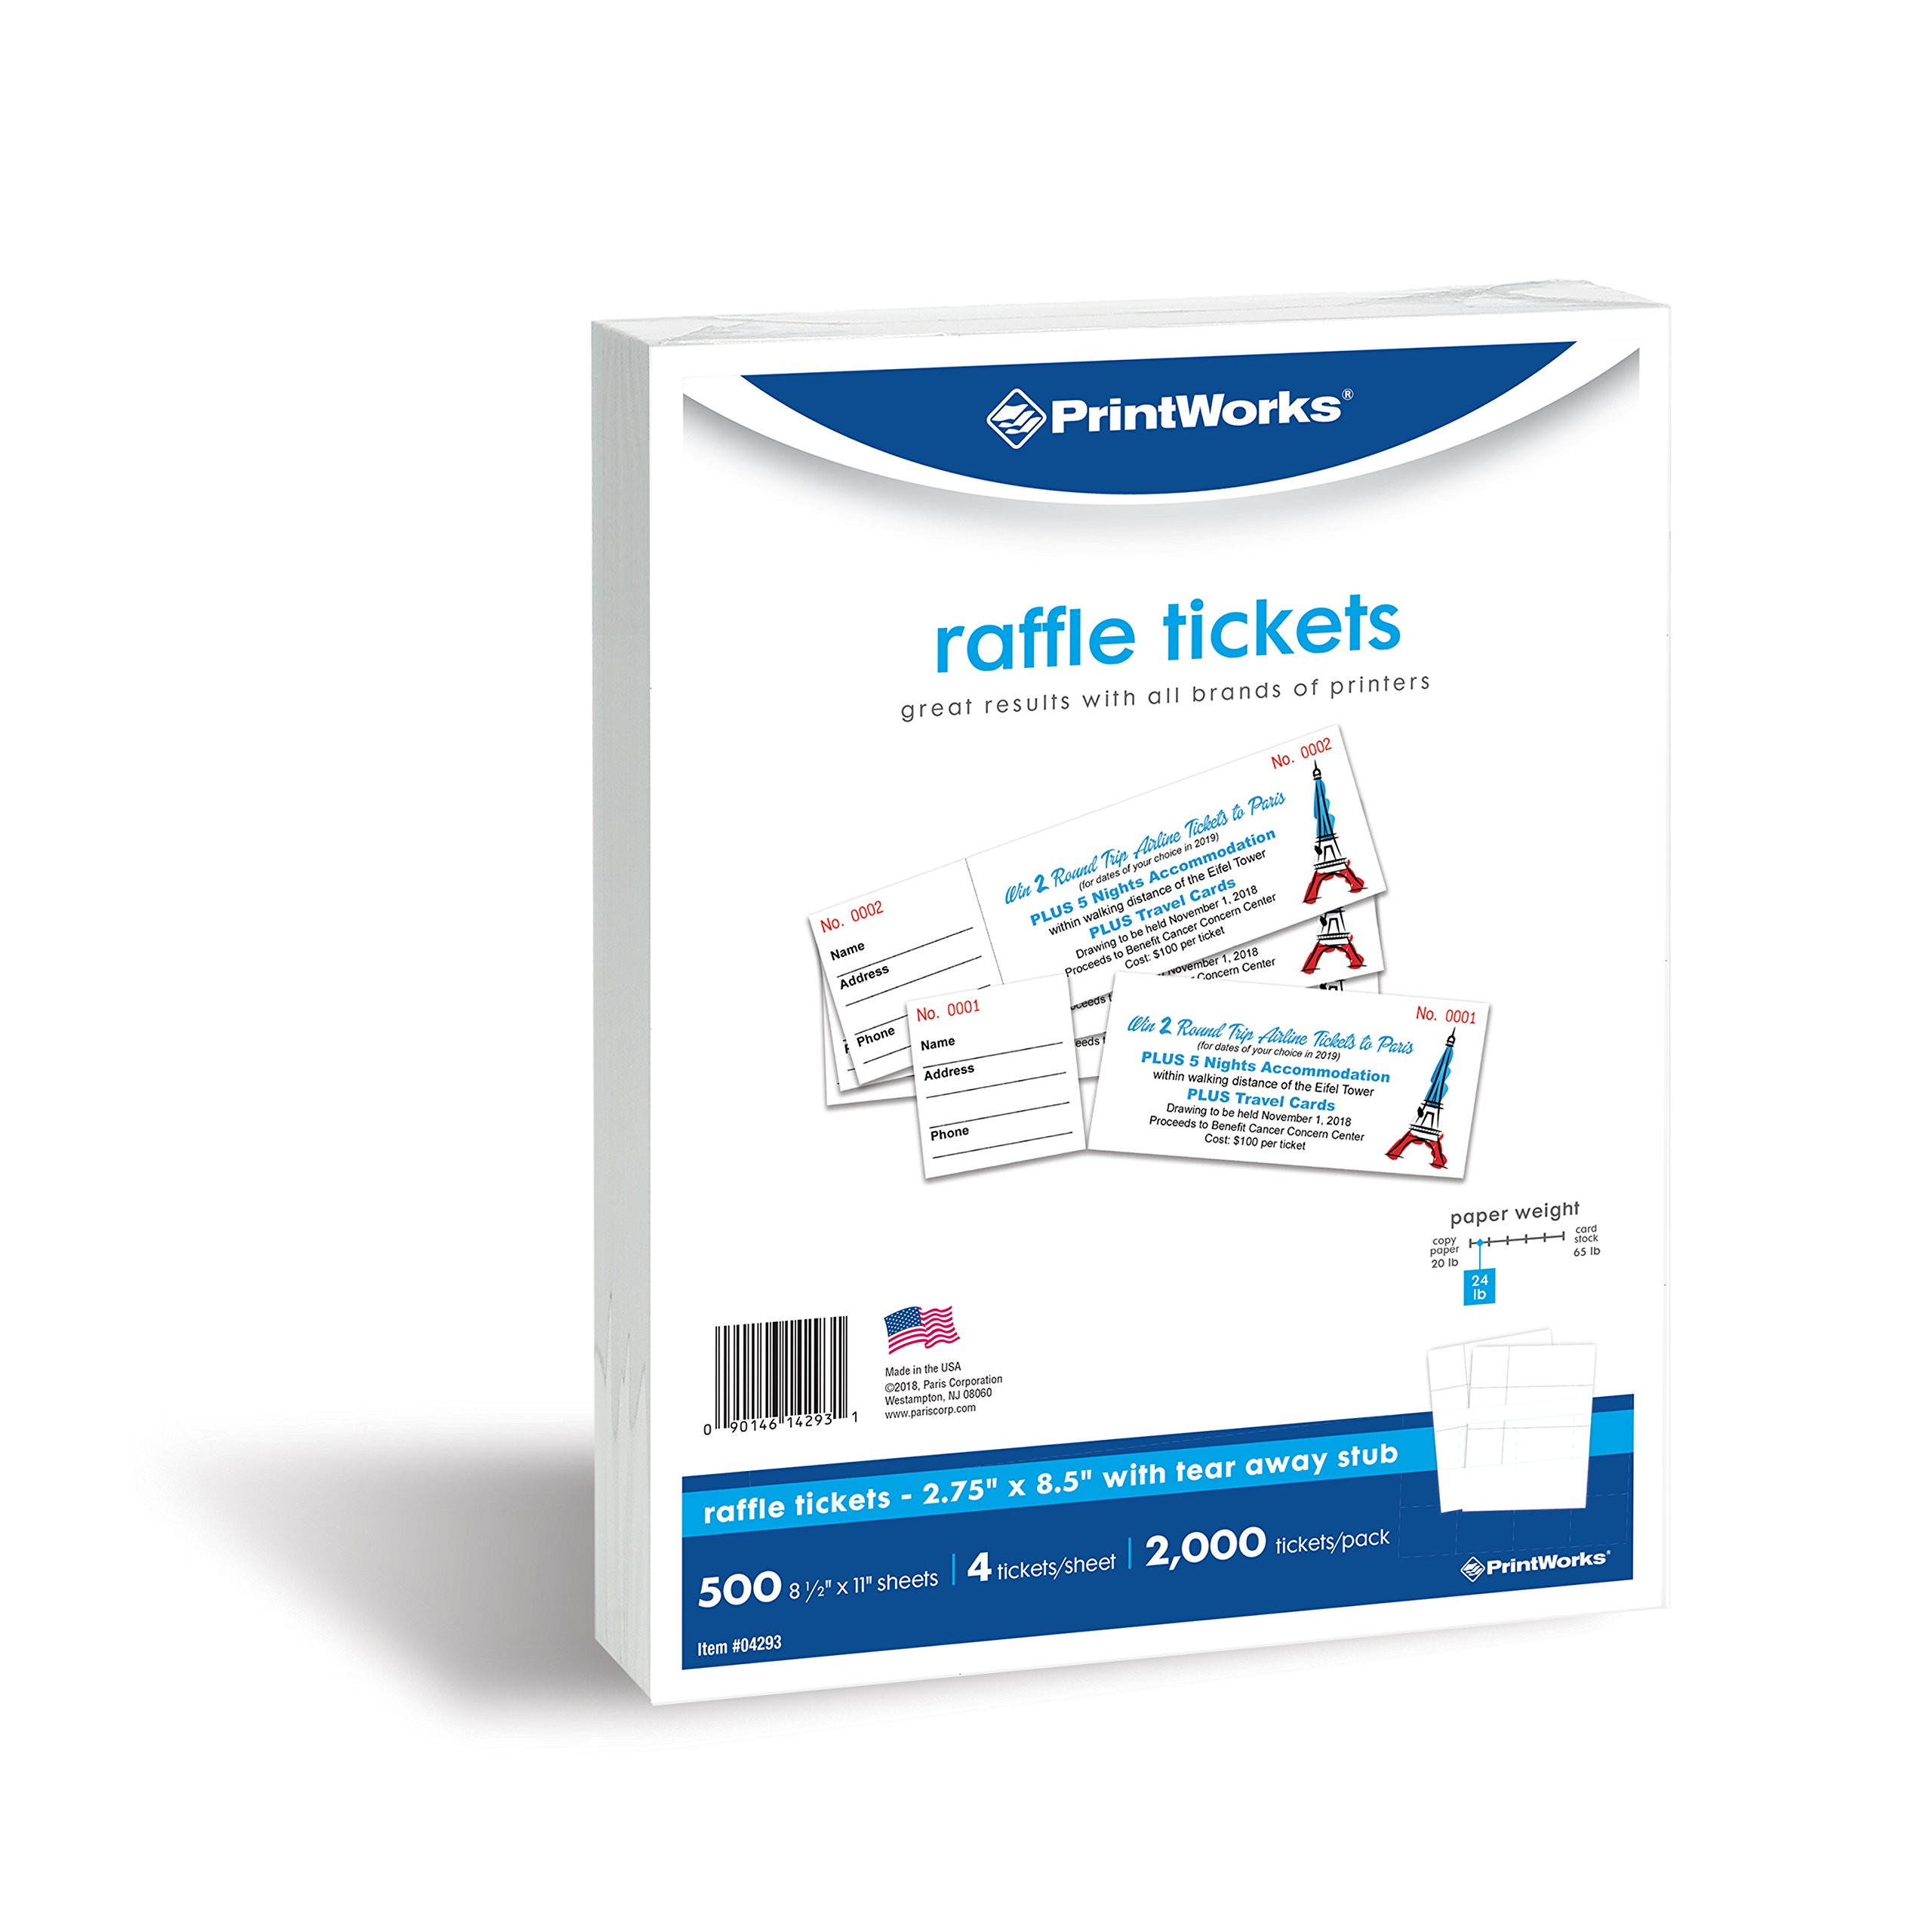 PrintWorks Perforated Paper for Raffle Tickets, Deposit Tickets, and More, Tear-Away Stubs, 8.5 x 11, 24 lb, 4 Tickets Per Sheet, 500 Sheets, 2000 Tickets Total, White (04293-1)